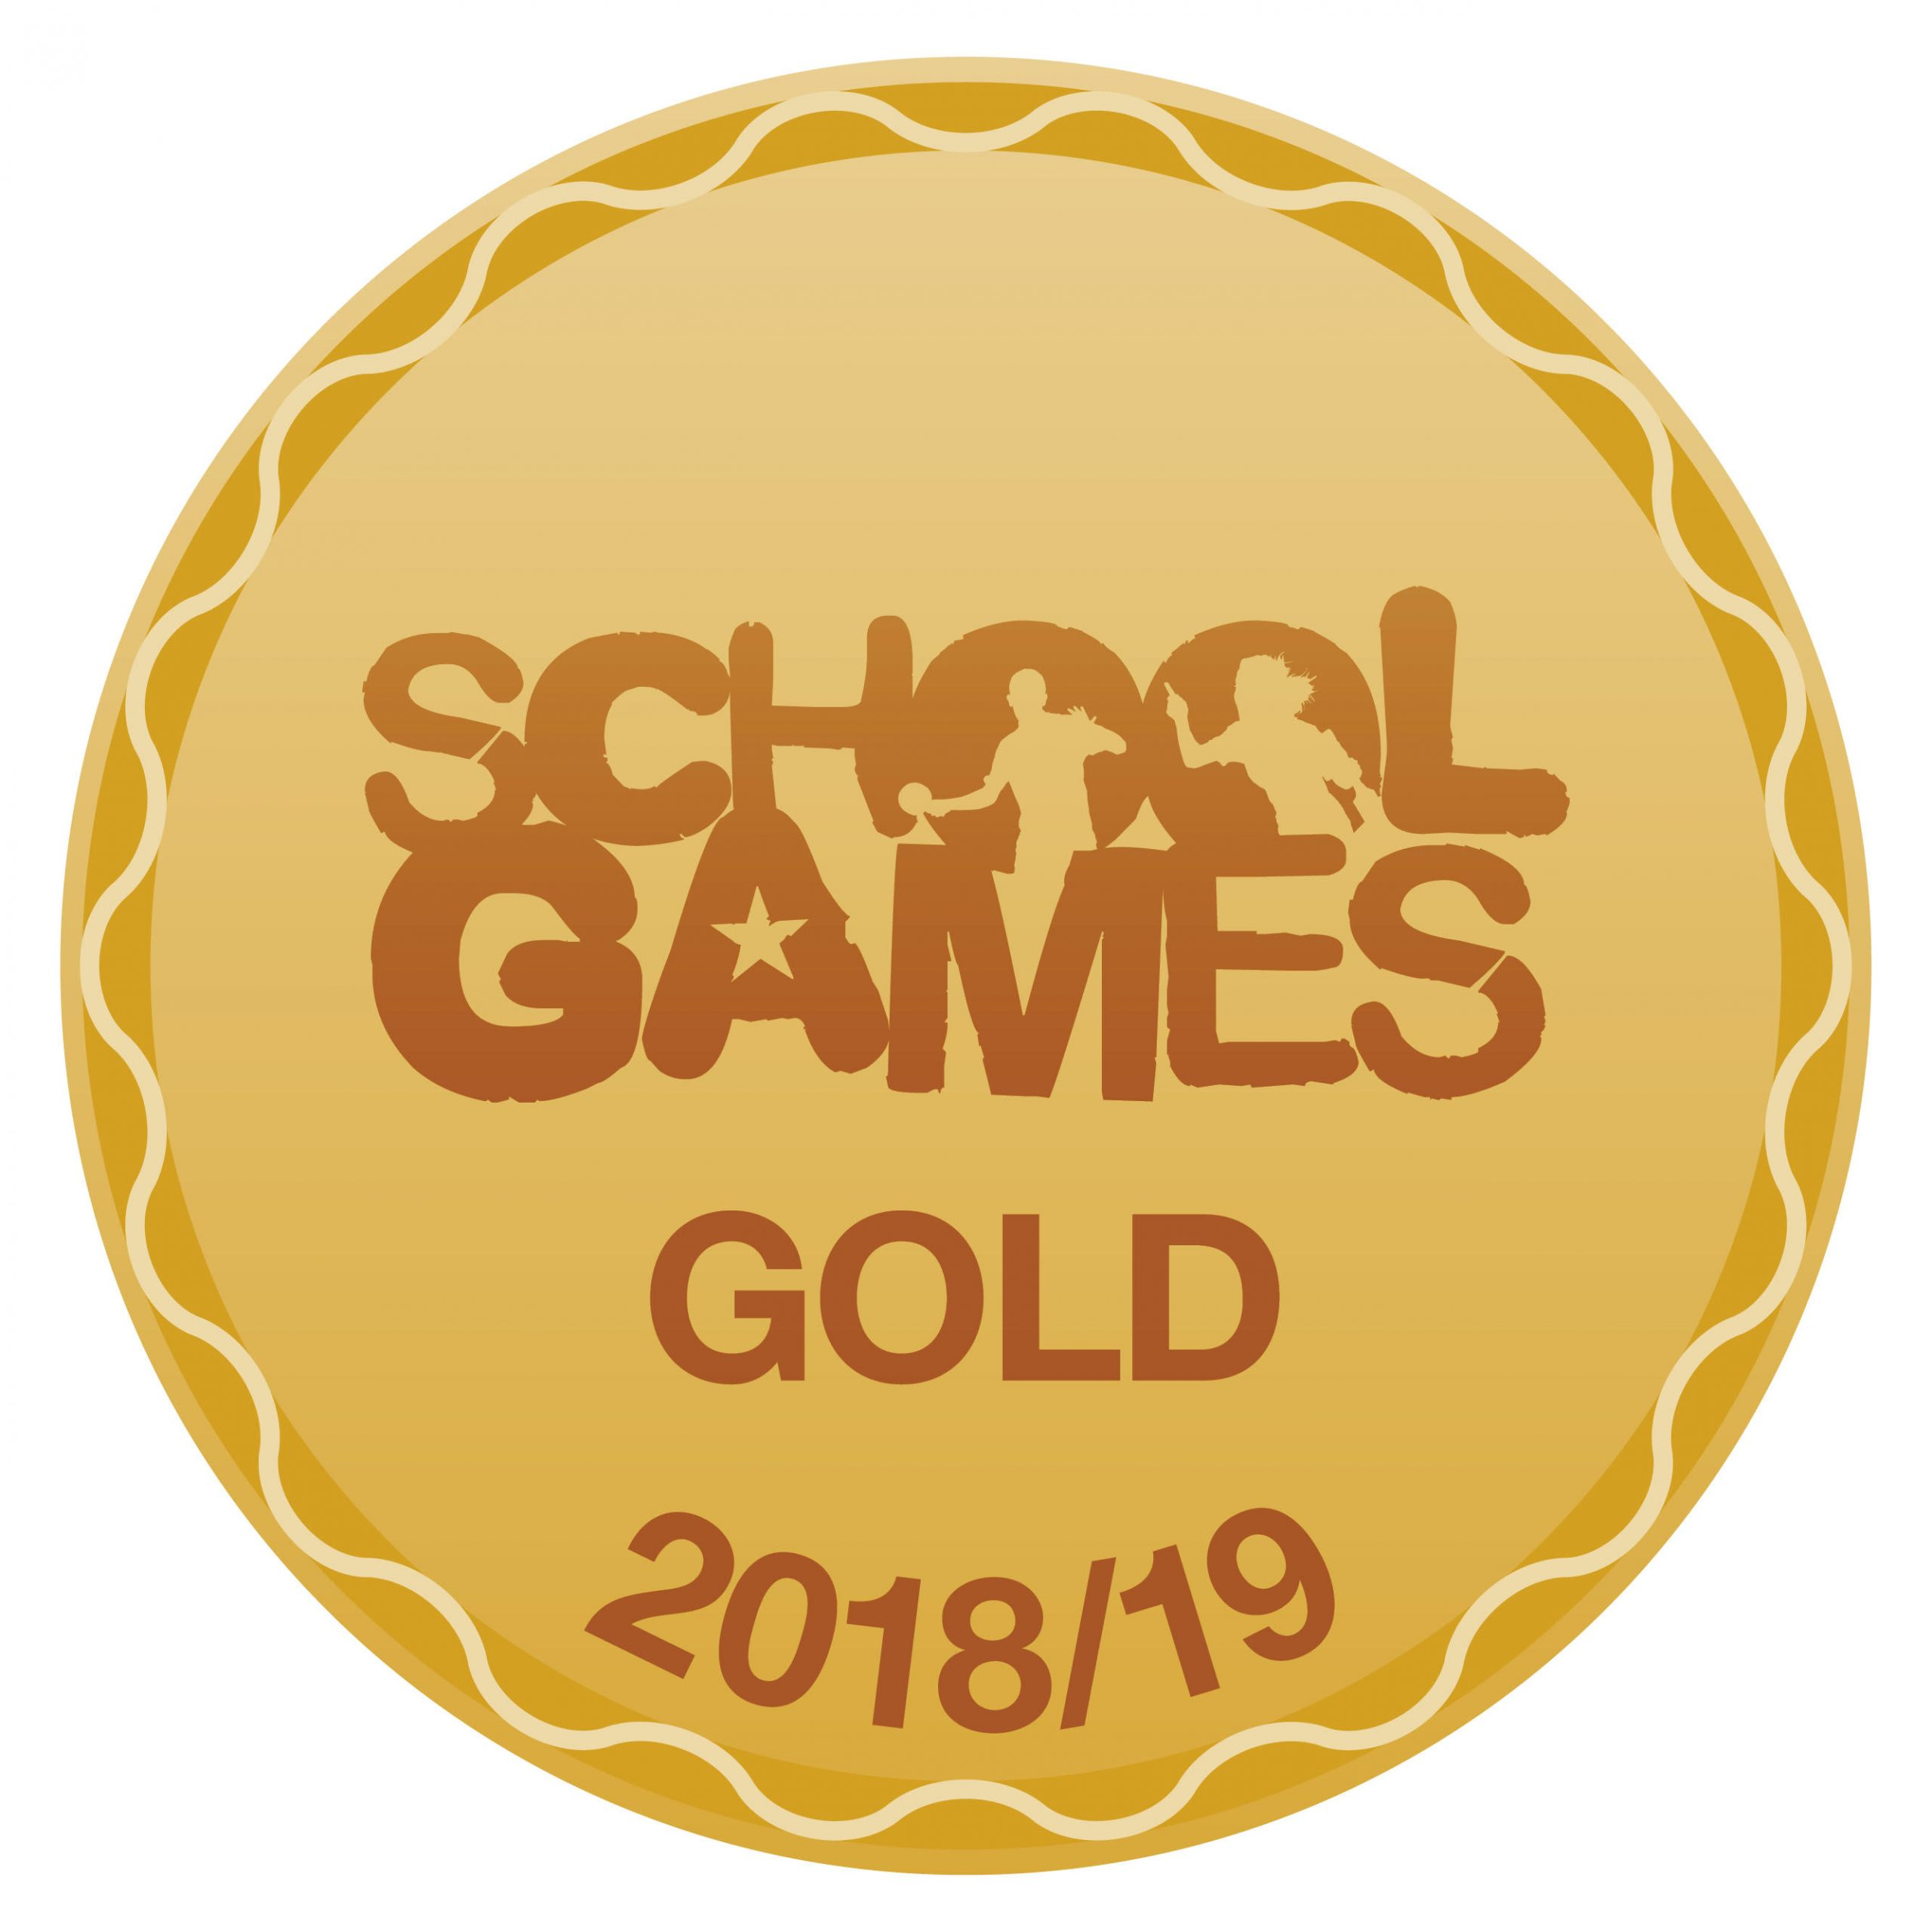 Sainsbury's School Games - Gold